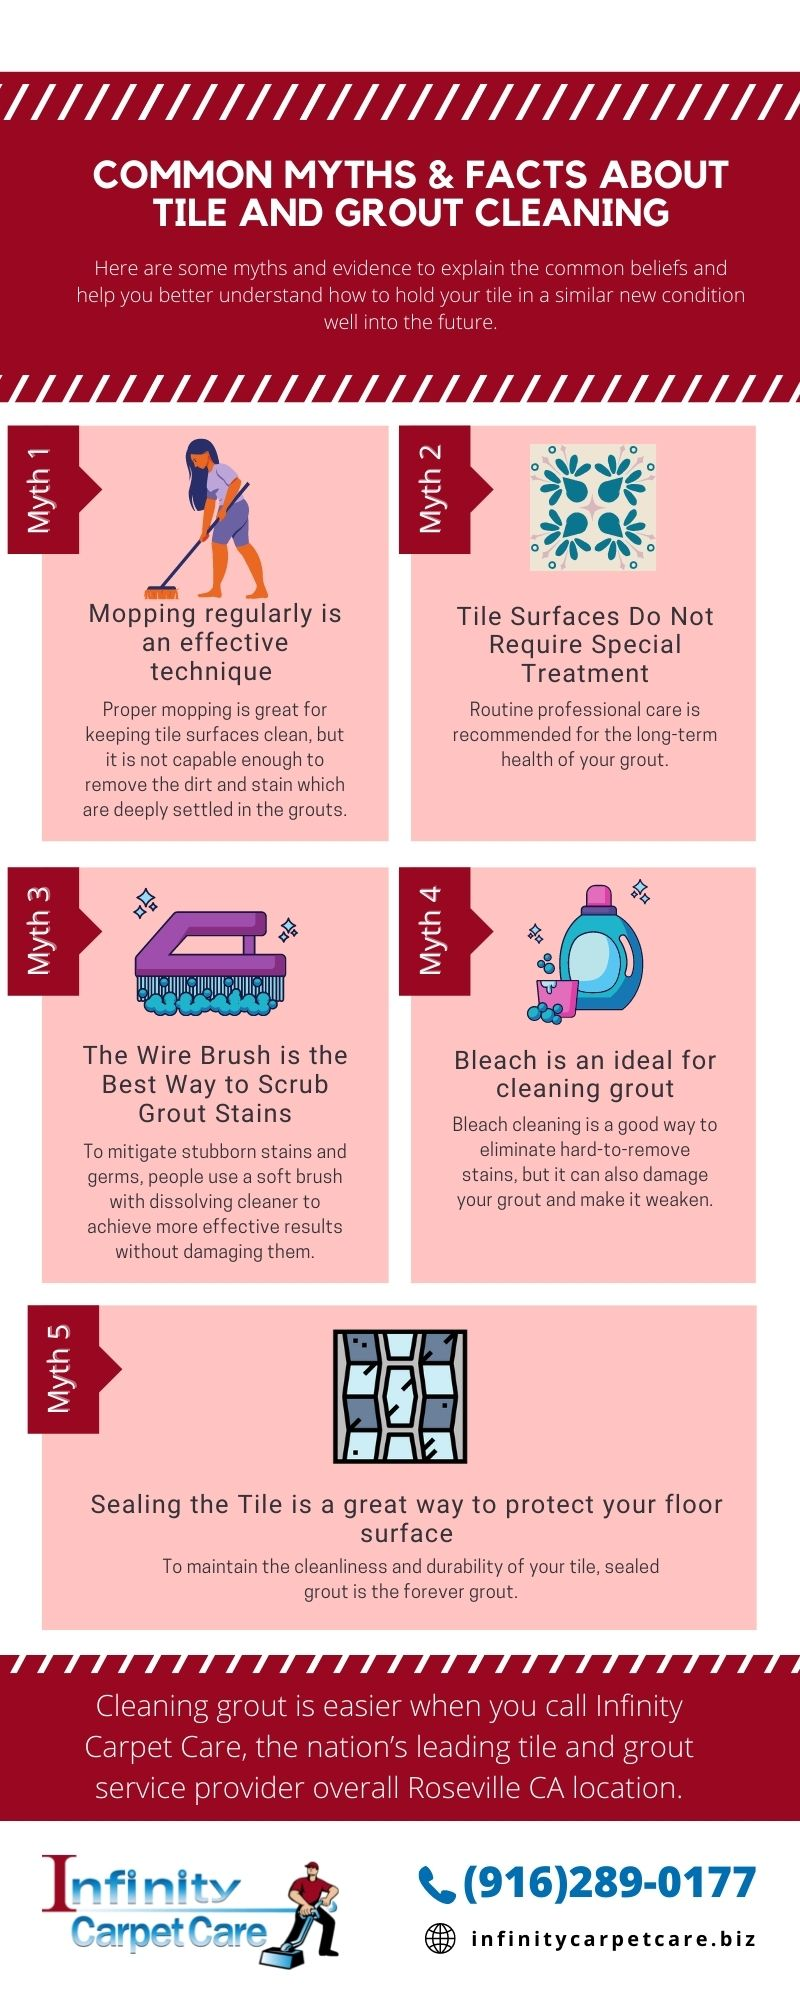 Common Myths & Facts About Tile and Grout Cleaning